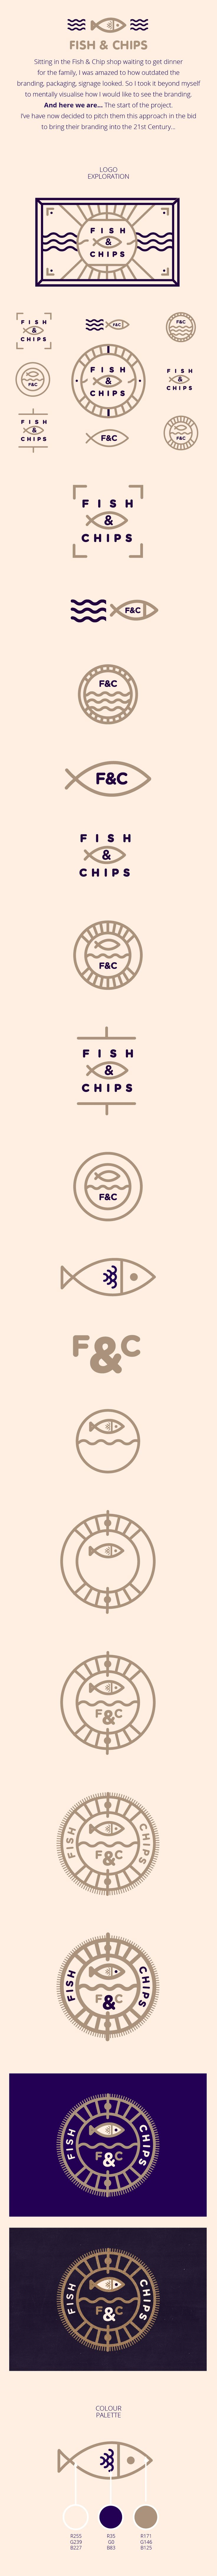 Fish & Chips // Branding on Behance